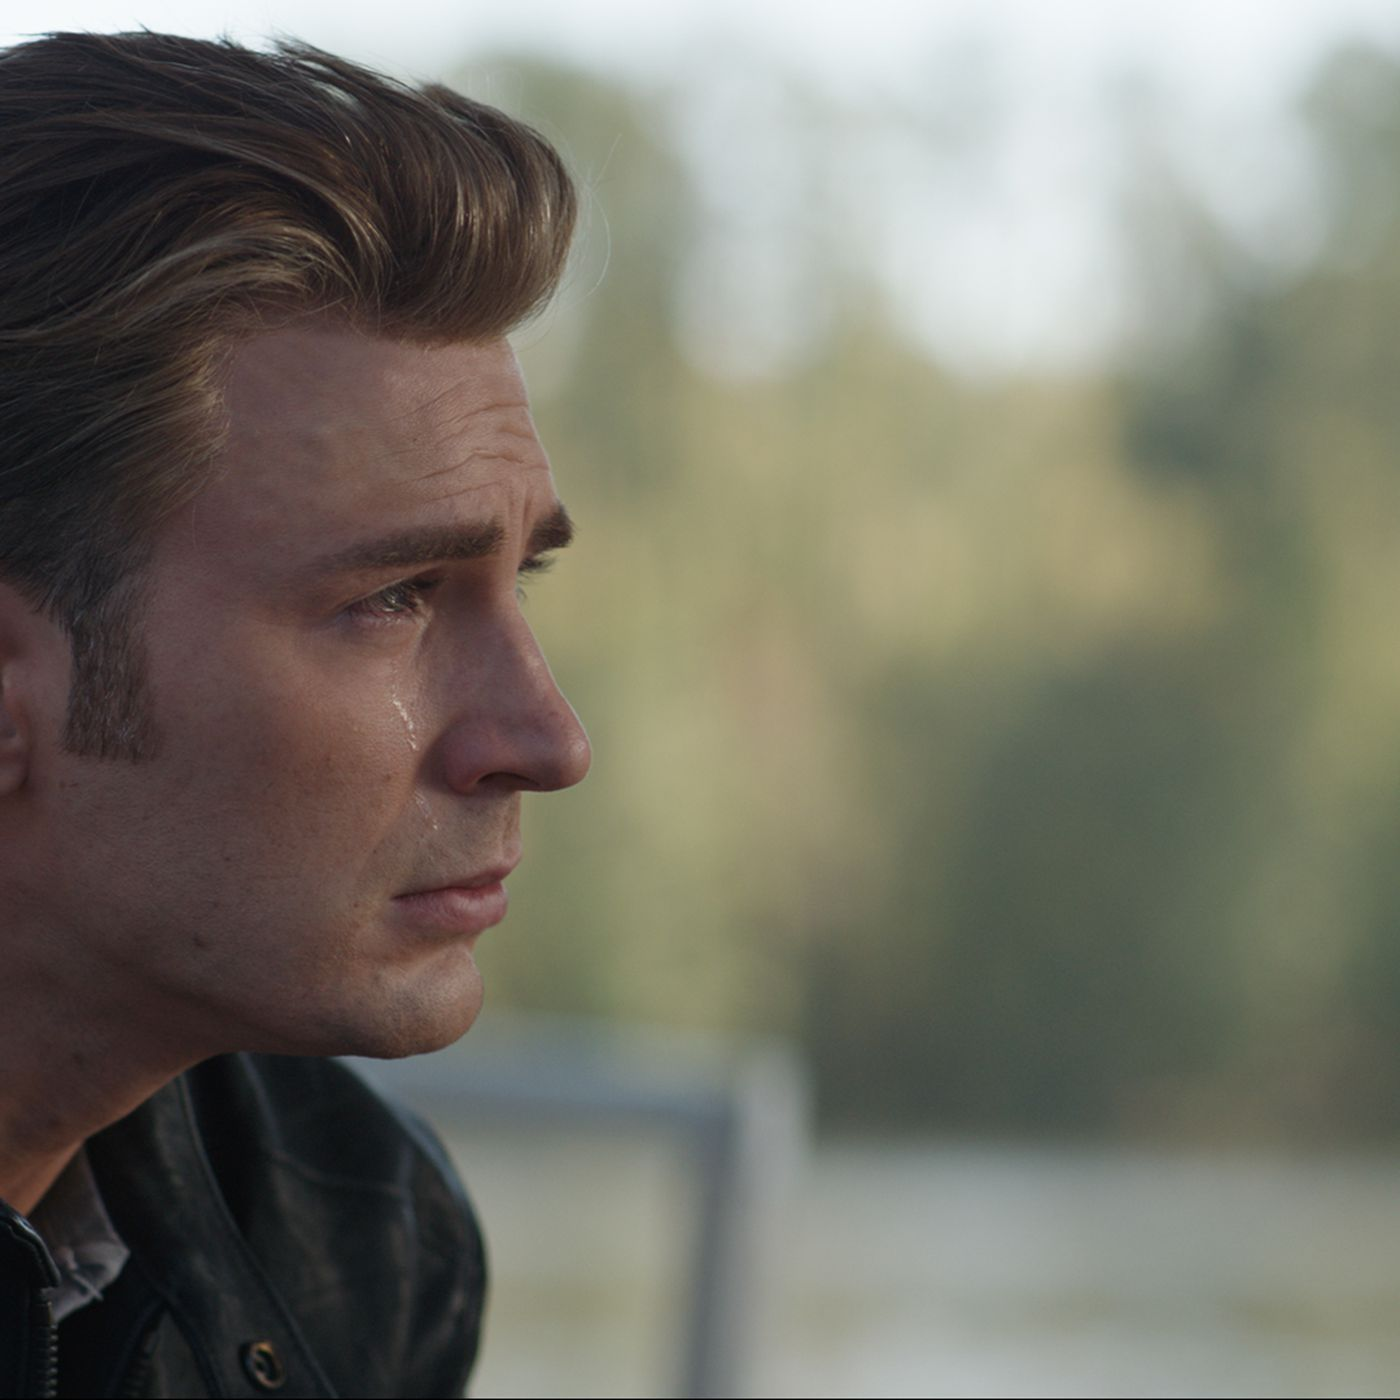 Avengers Endgame Review A Marvel Miracle And A Fitting